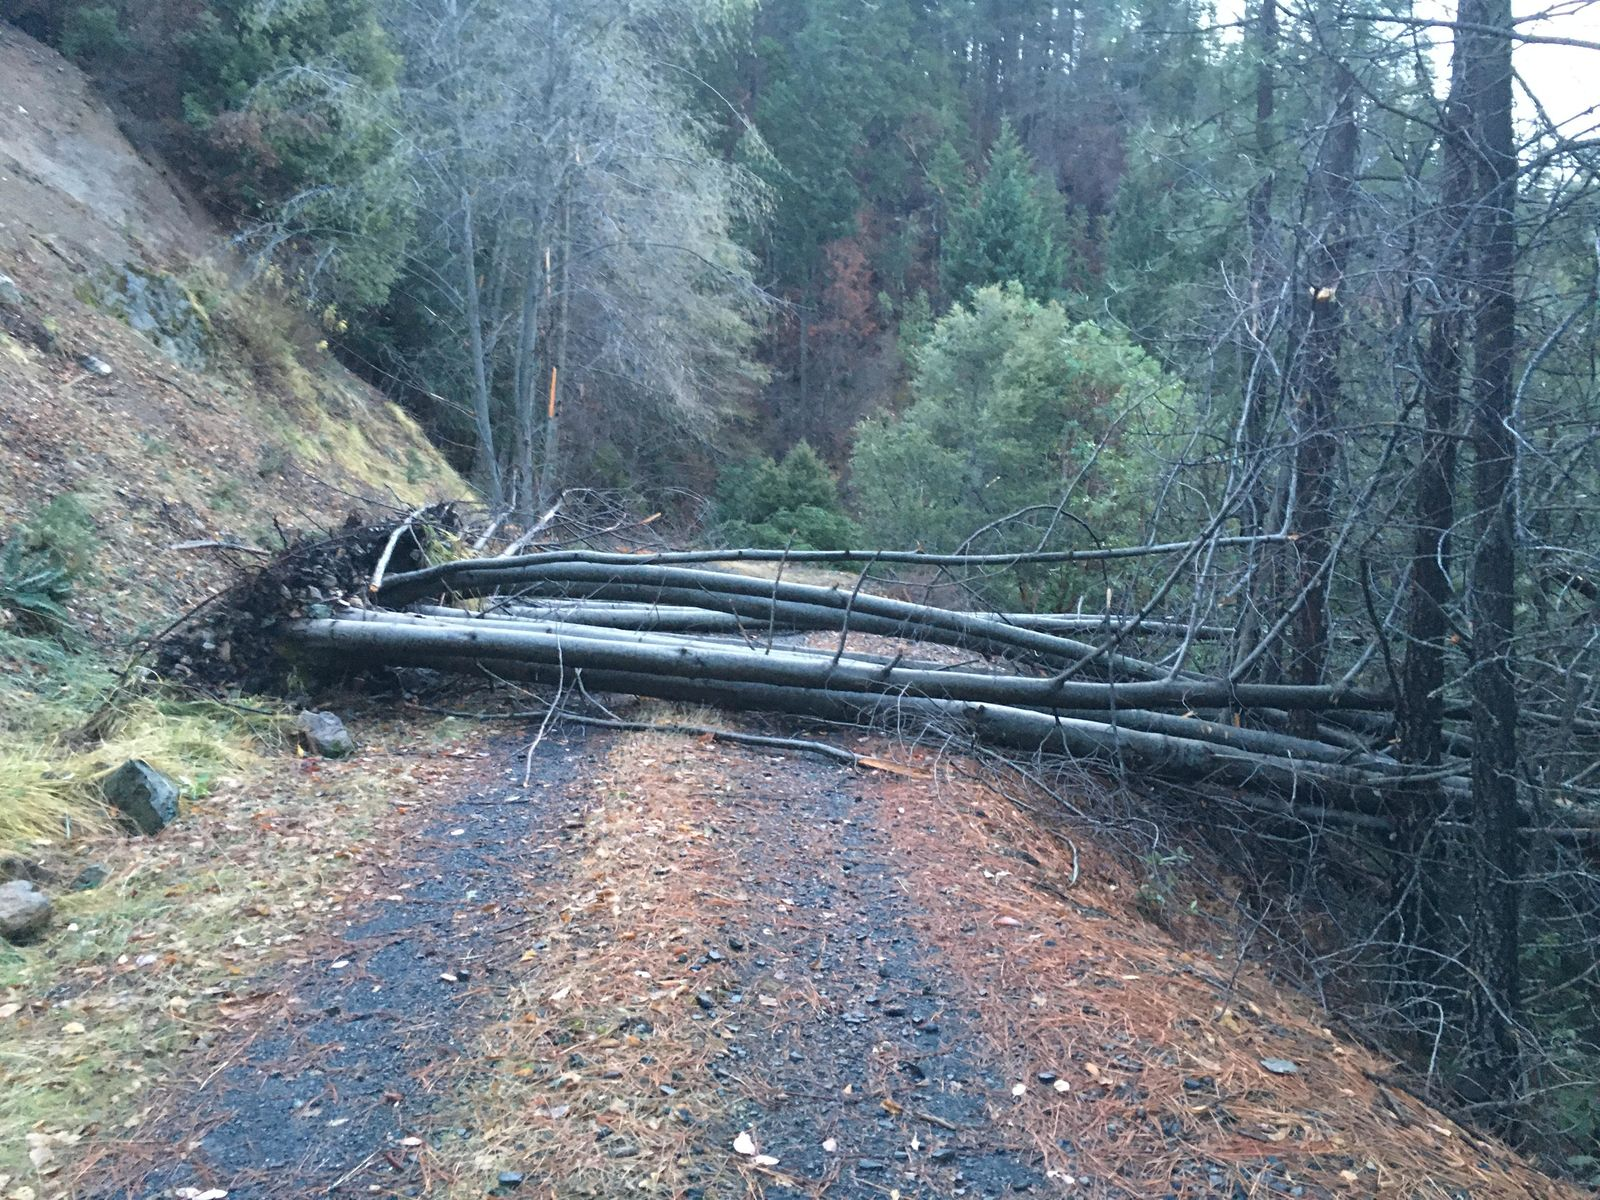 A bundle of trees blocked the road at the location of where Russell Wilcox's remains were found. Tracks from his truck indicate he went over a 300 foot embankment trying to turn around, according to the Josephine County Sheriff's Office. (Courtesy: Josephine County Sheriff's Office) <p></p>